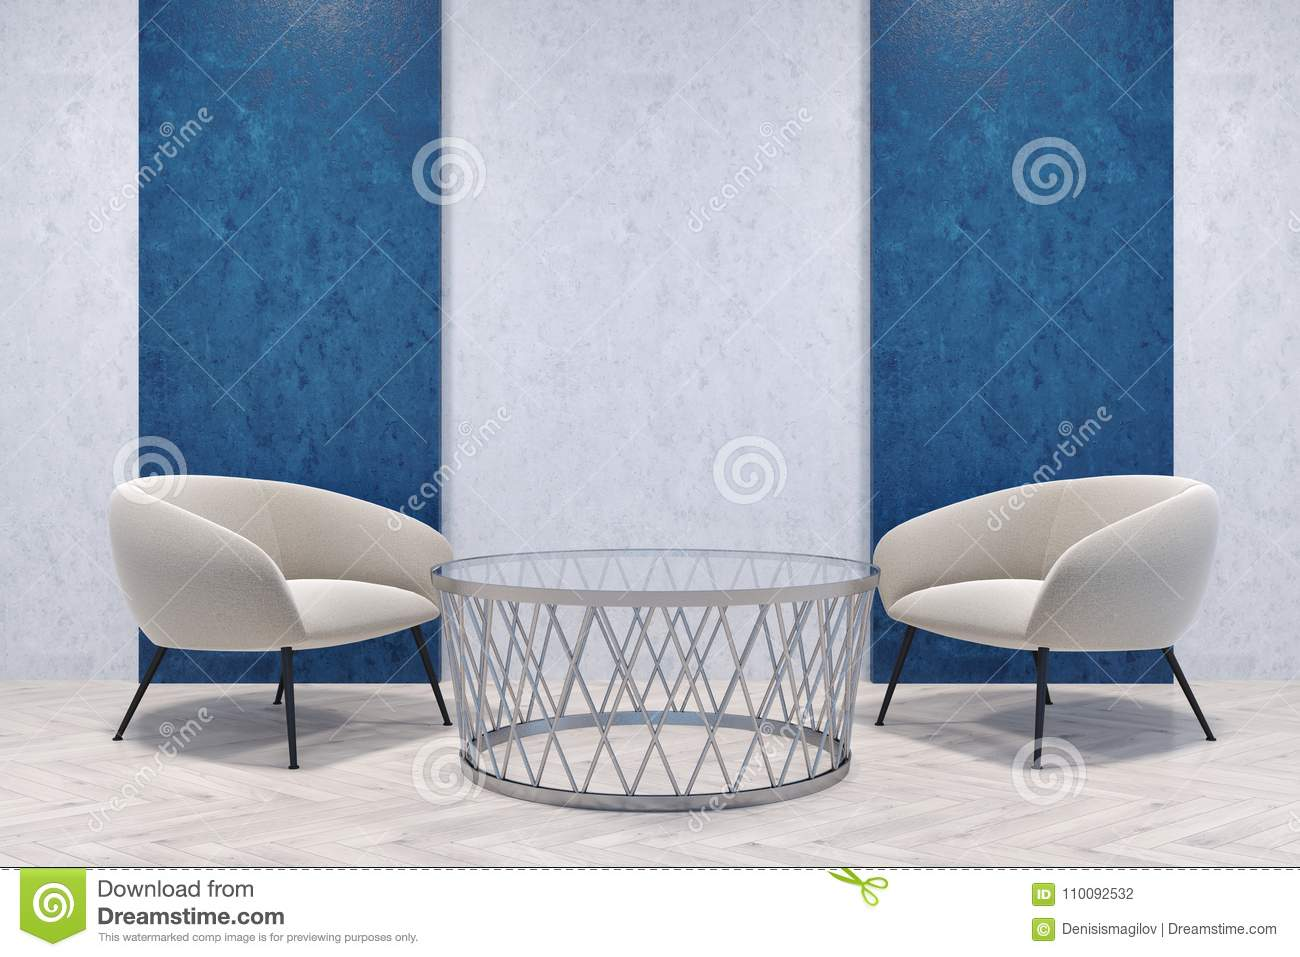 white armchairs in a blue and gray room stock illustration